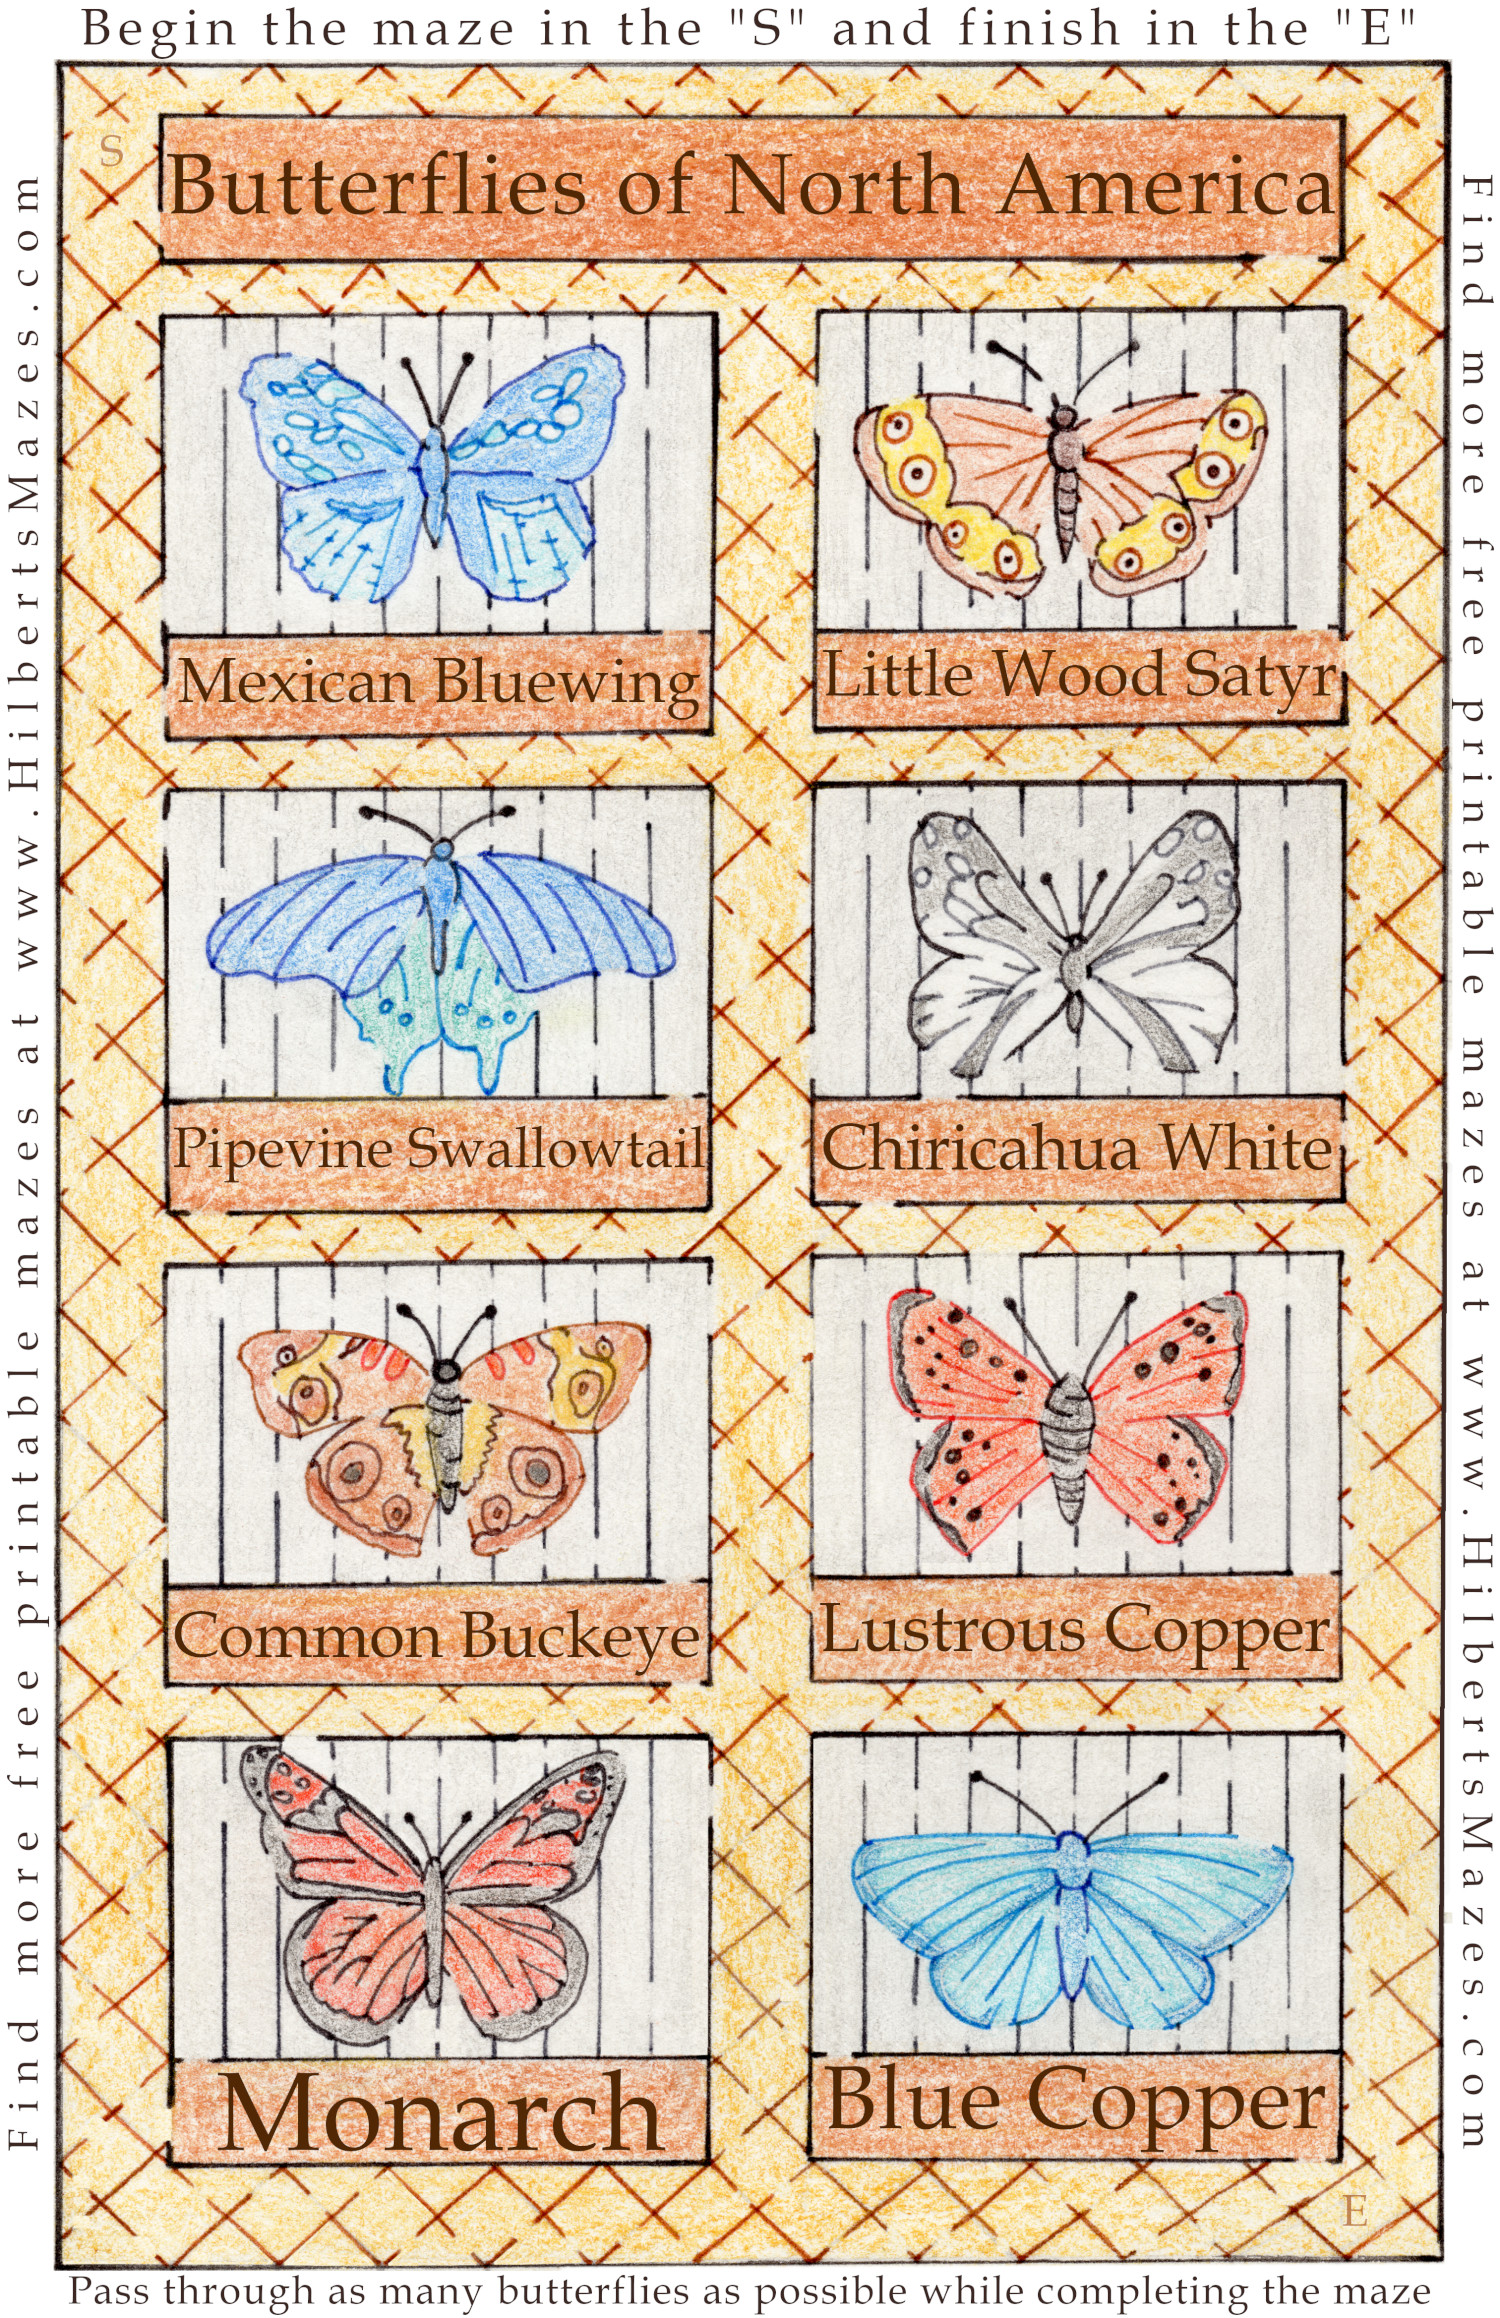 Free Printable Hand Drawn Butterfly Maze and Puzzle. Perfect for family trips or kids activities. Perfect for teachers, day care and school parties. Easily downloadable free printable PDF format. Great Mazes and Games for both kids & adults very challenging but fun.